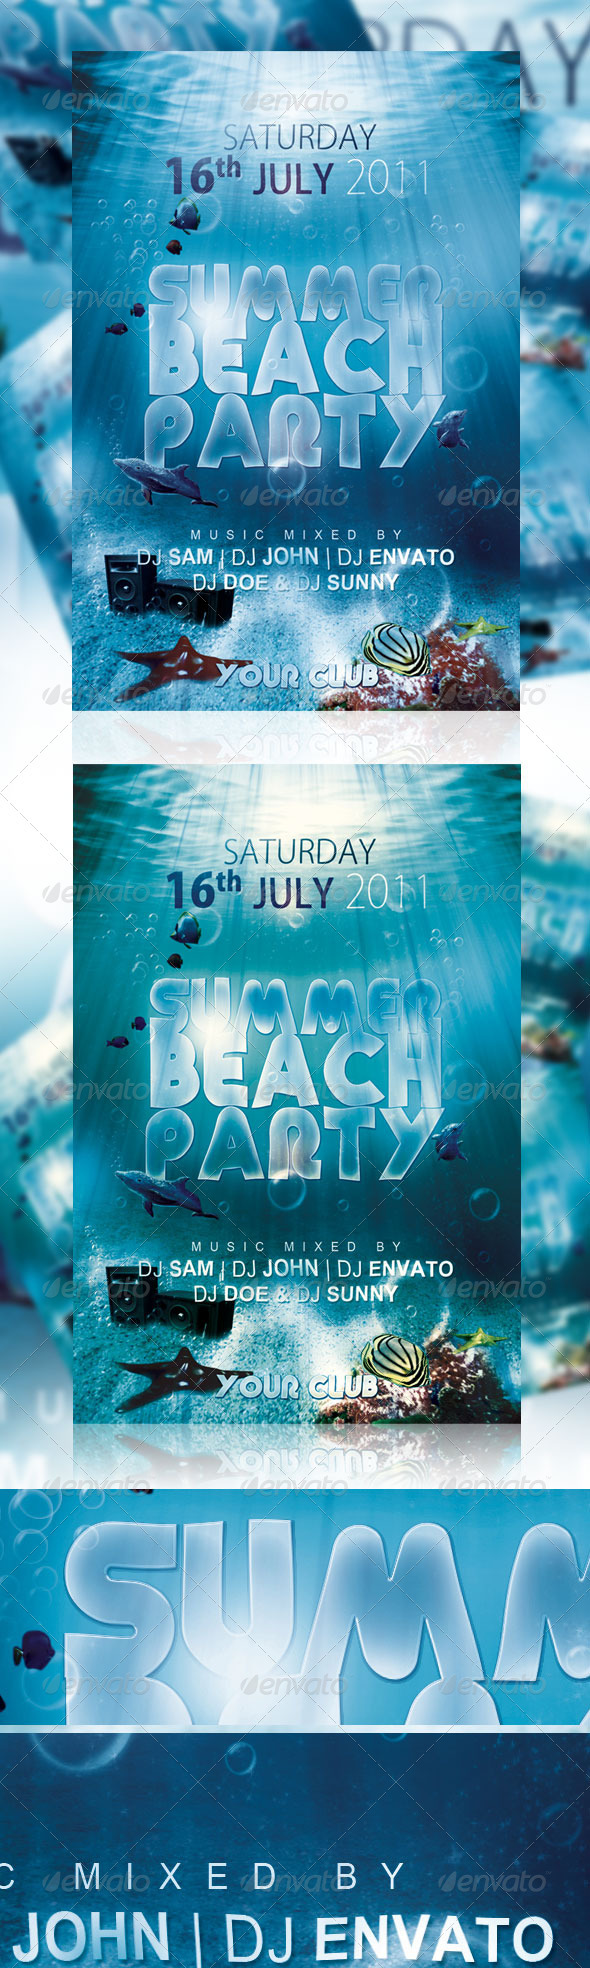 Summer Beach Party Flyer Ver 1 - Clubs & Parties Events